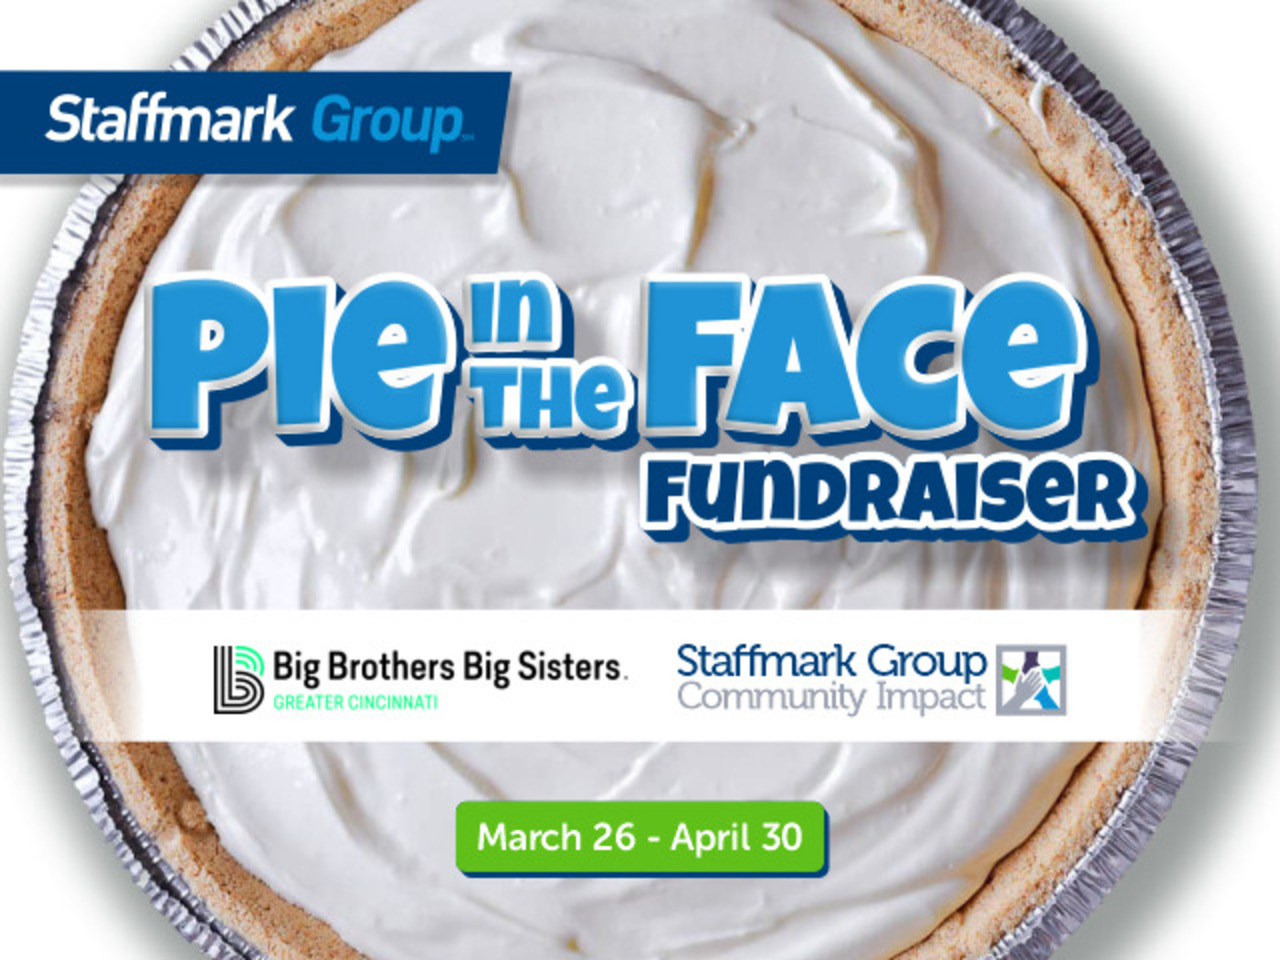 Staffmark Group's Team is Taking a Pie in the Face to Help Kids